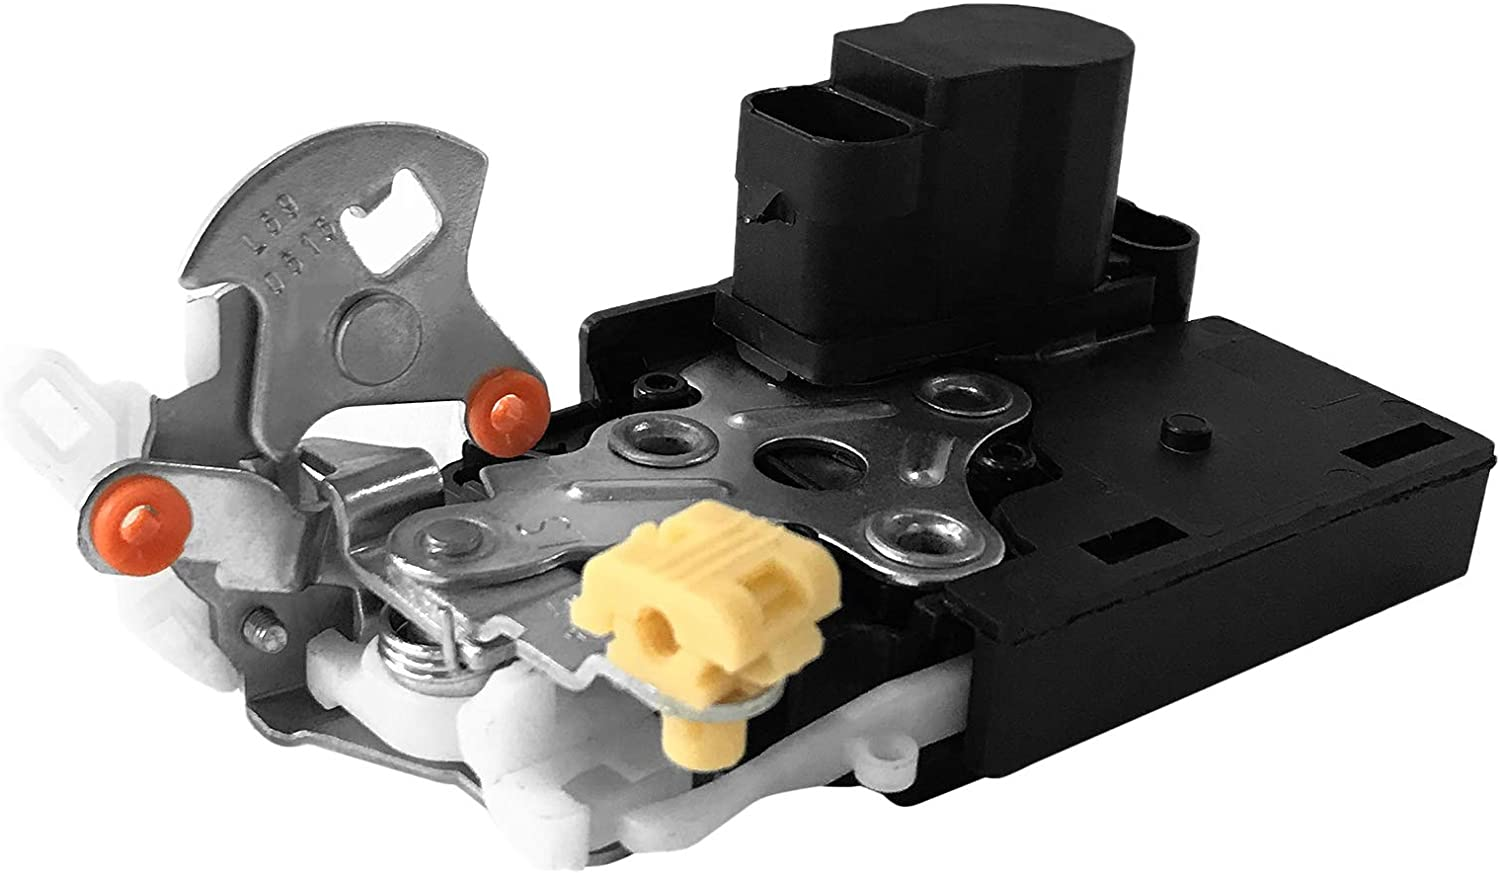 Rogue 13-15 Front Left Right Side Side For Rogue Apps Shock and Strut Mount for Nissan Versa 07-12